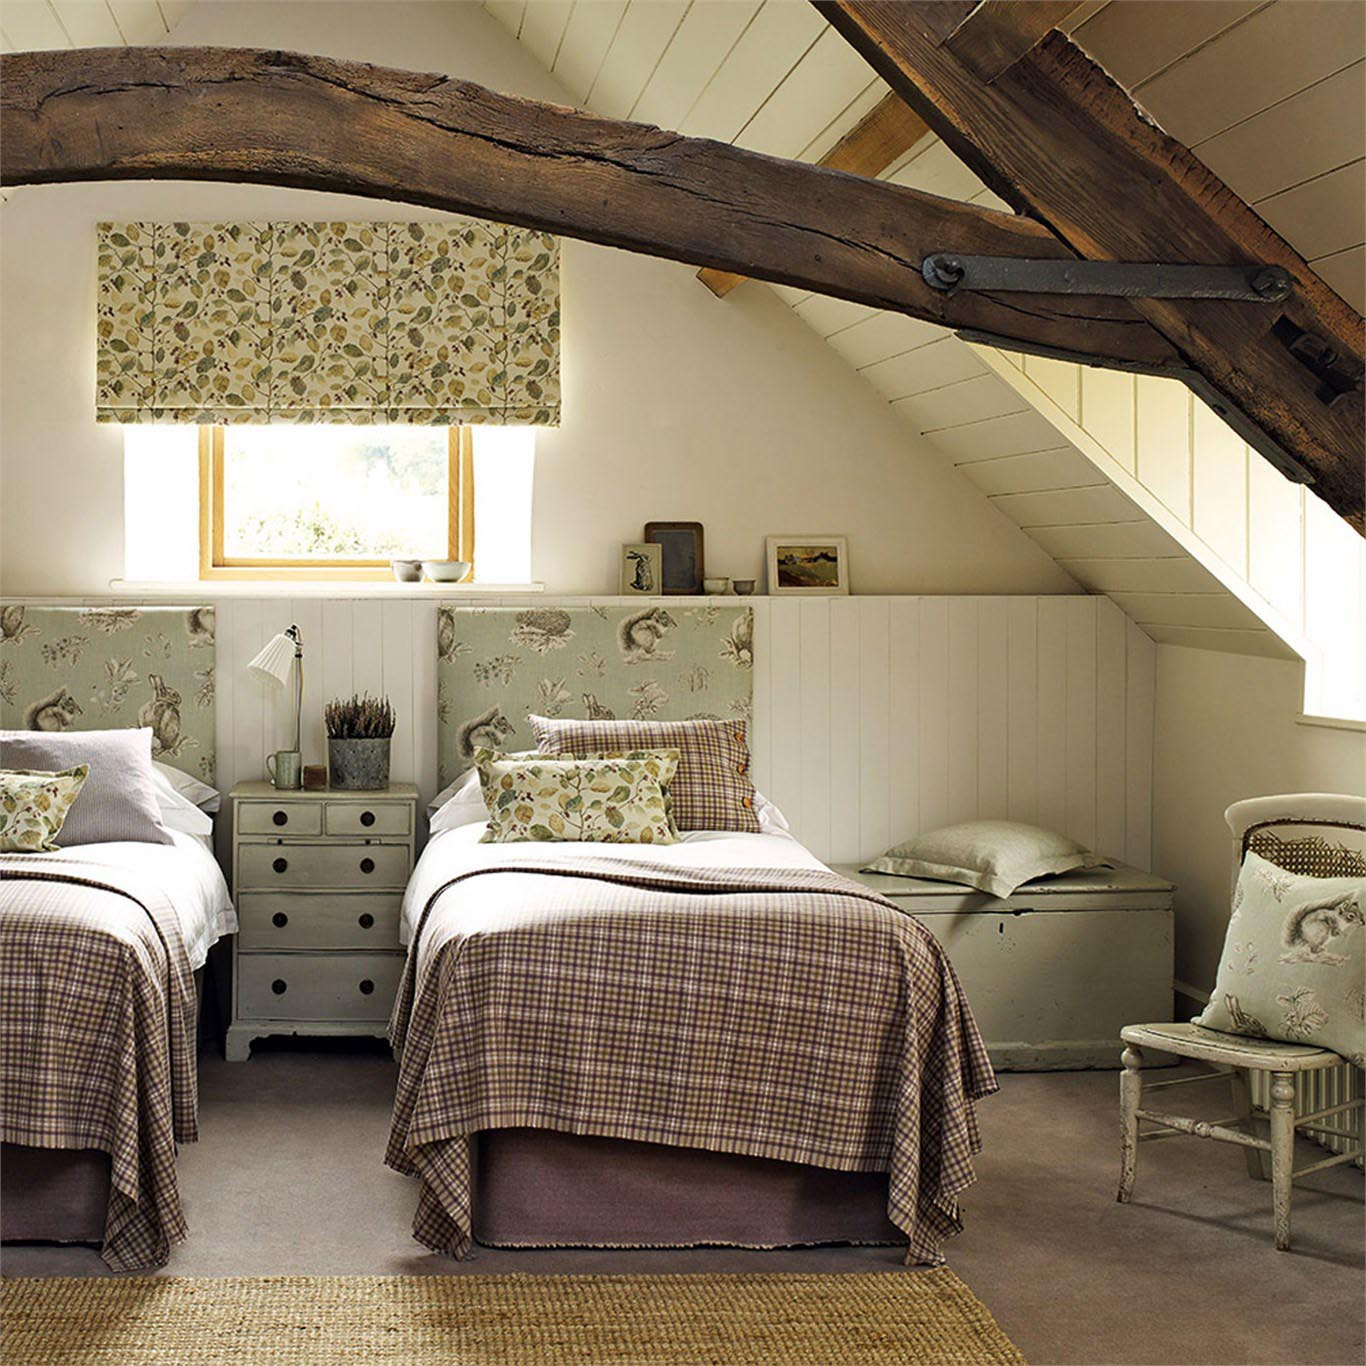 Attic bedroom with two beds, upholstered headboards